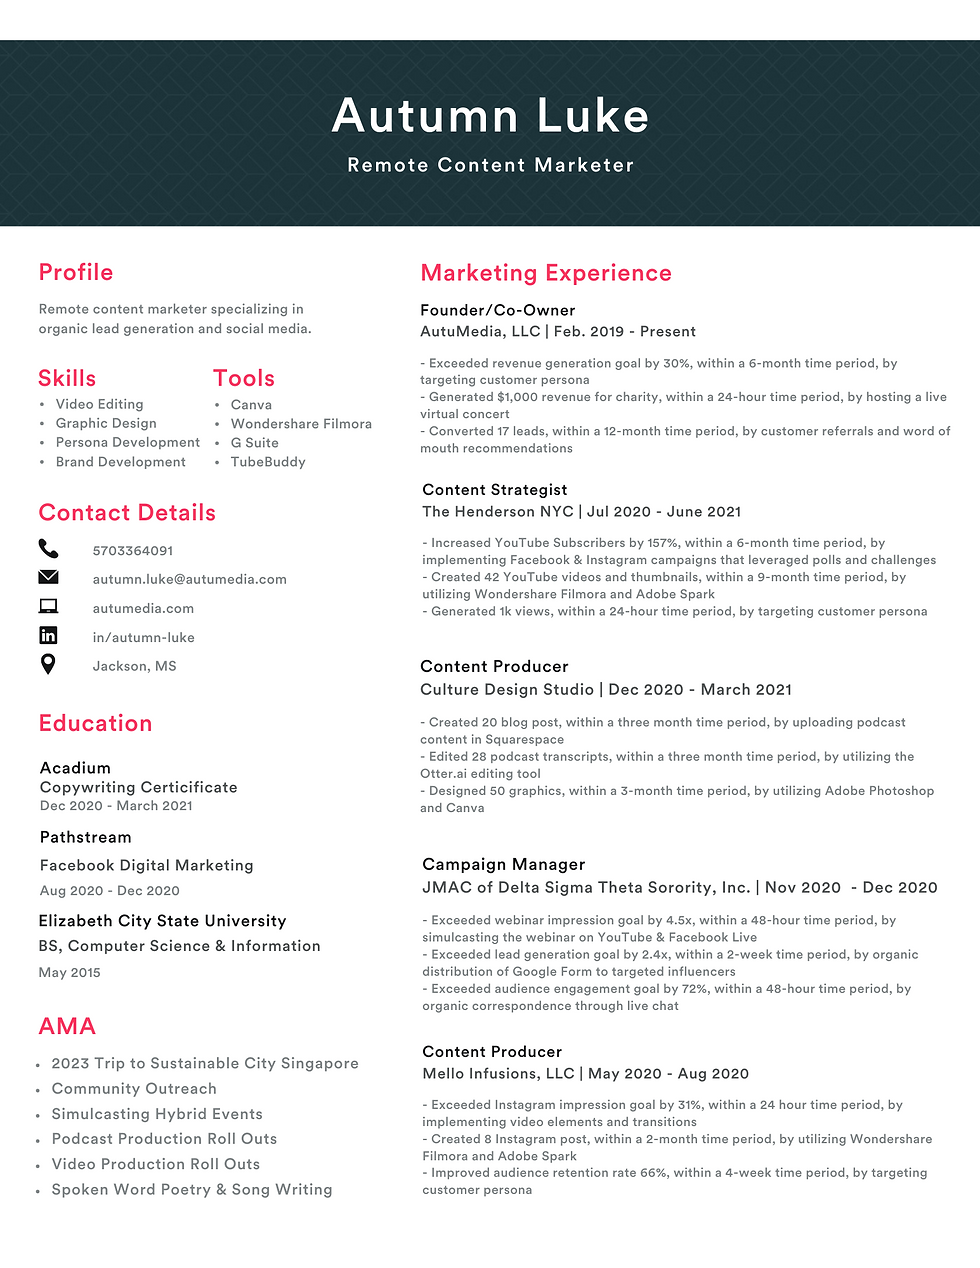 Autumn Luke_Remote Content Marketer Resume.png